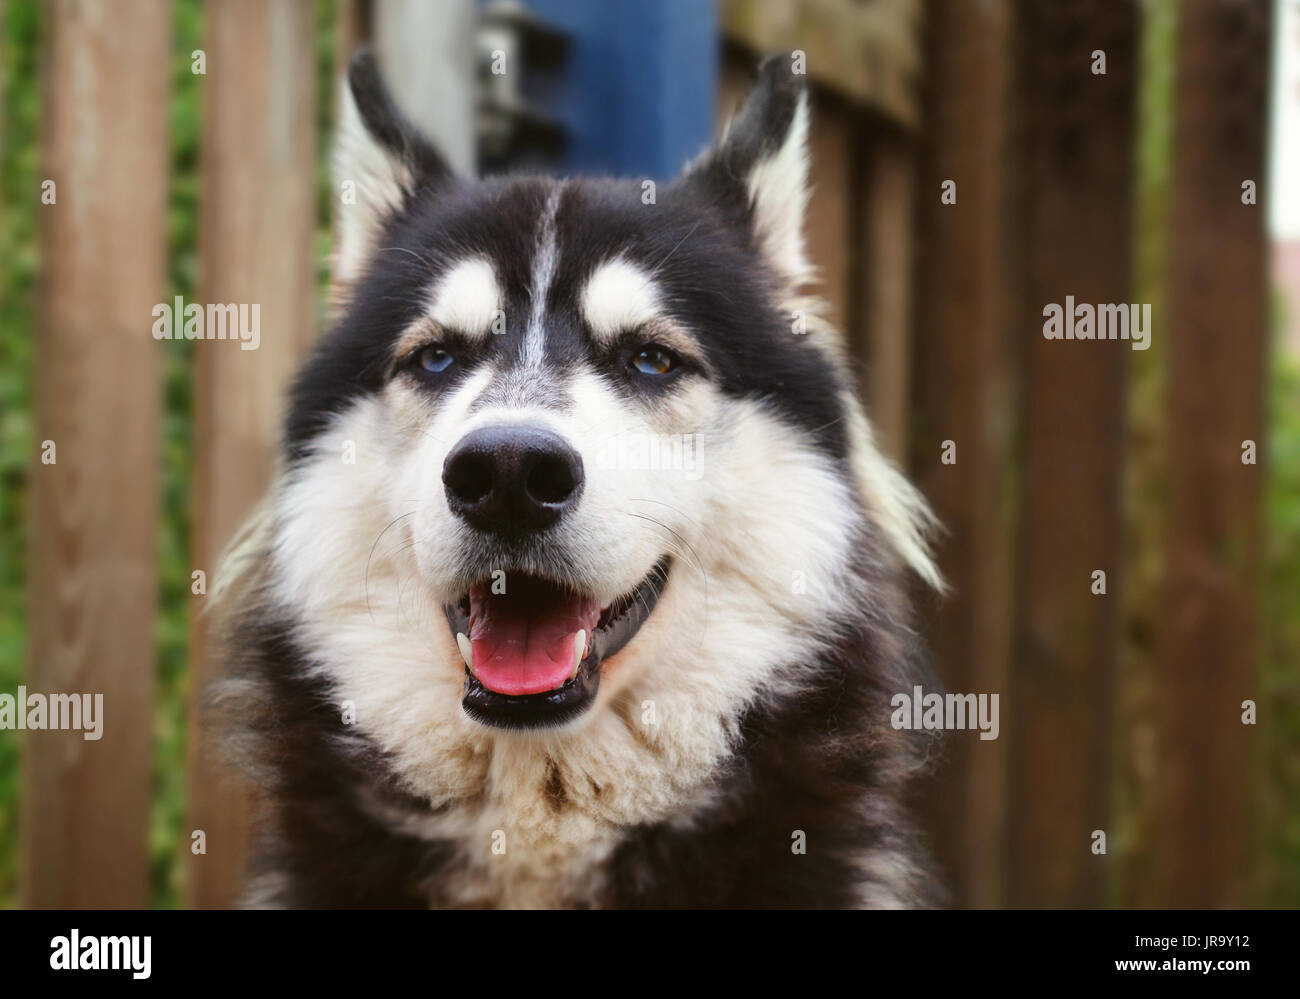 Siberian Husky with blue eyes smiling into camera, image with vintage effect - Stock Image